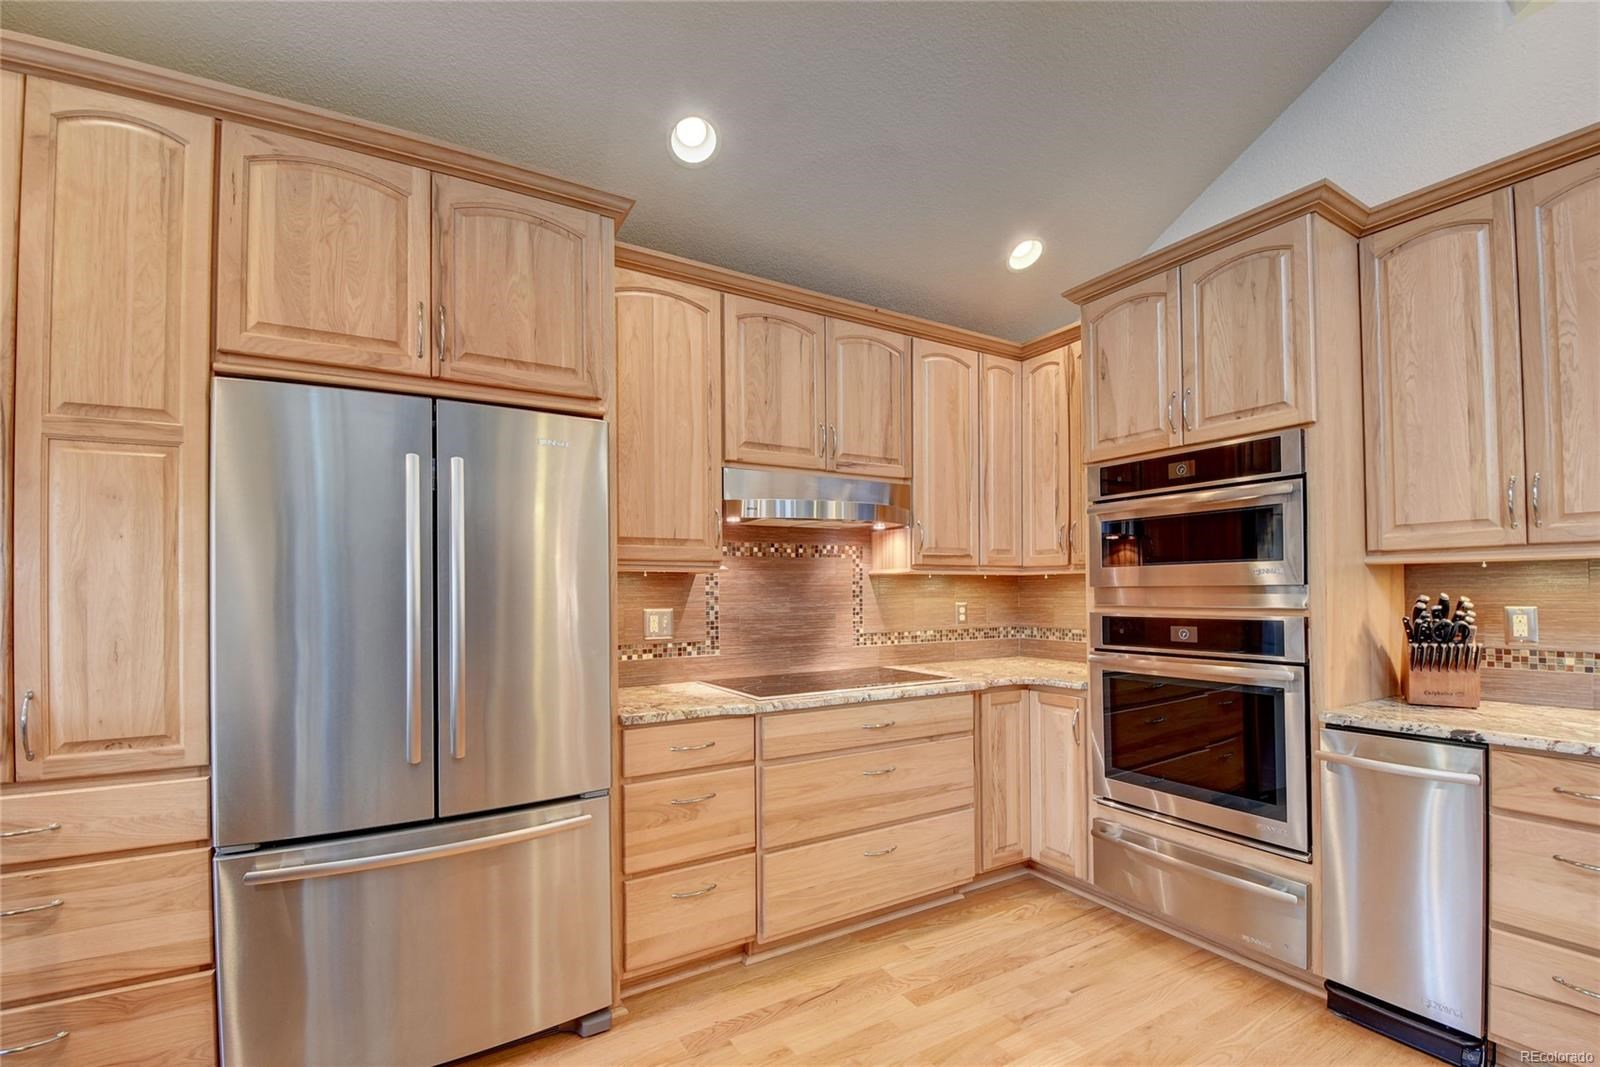 MLS# 9913436 - 10 - 5726 W 81st Place, Arvada, CO 80003